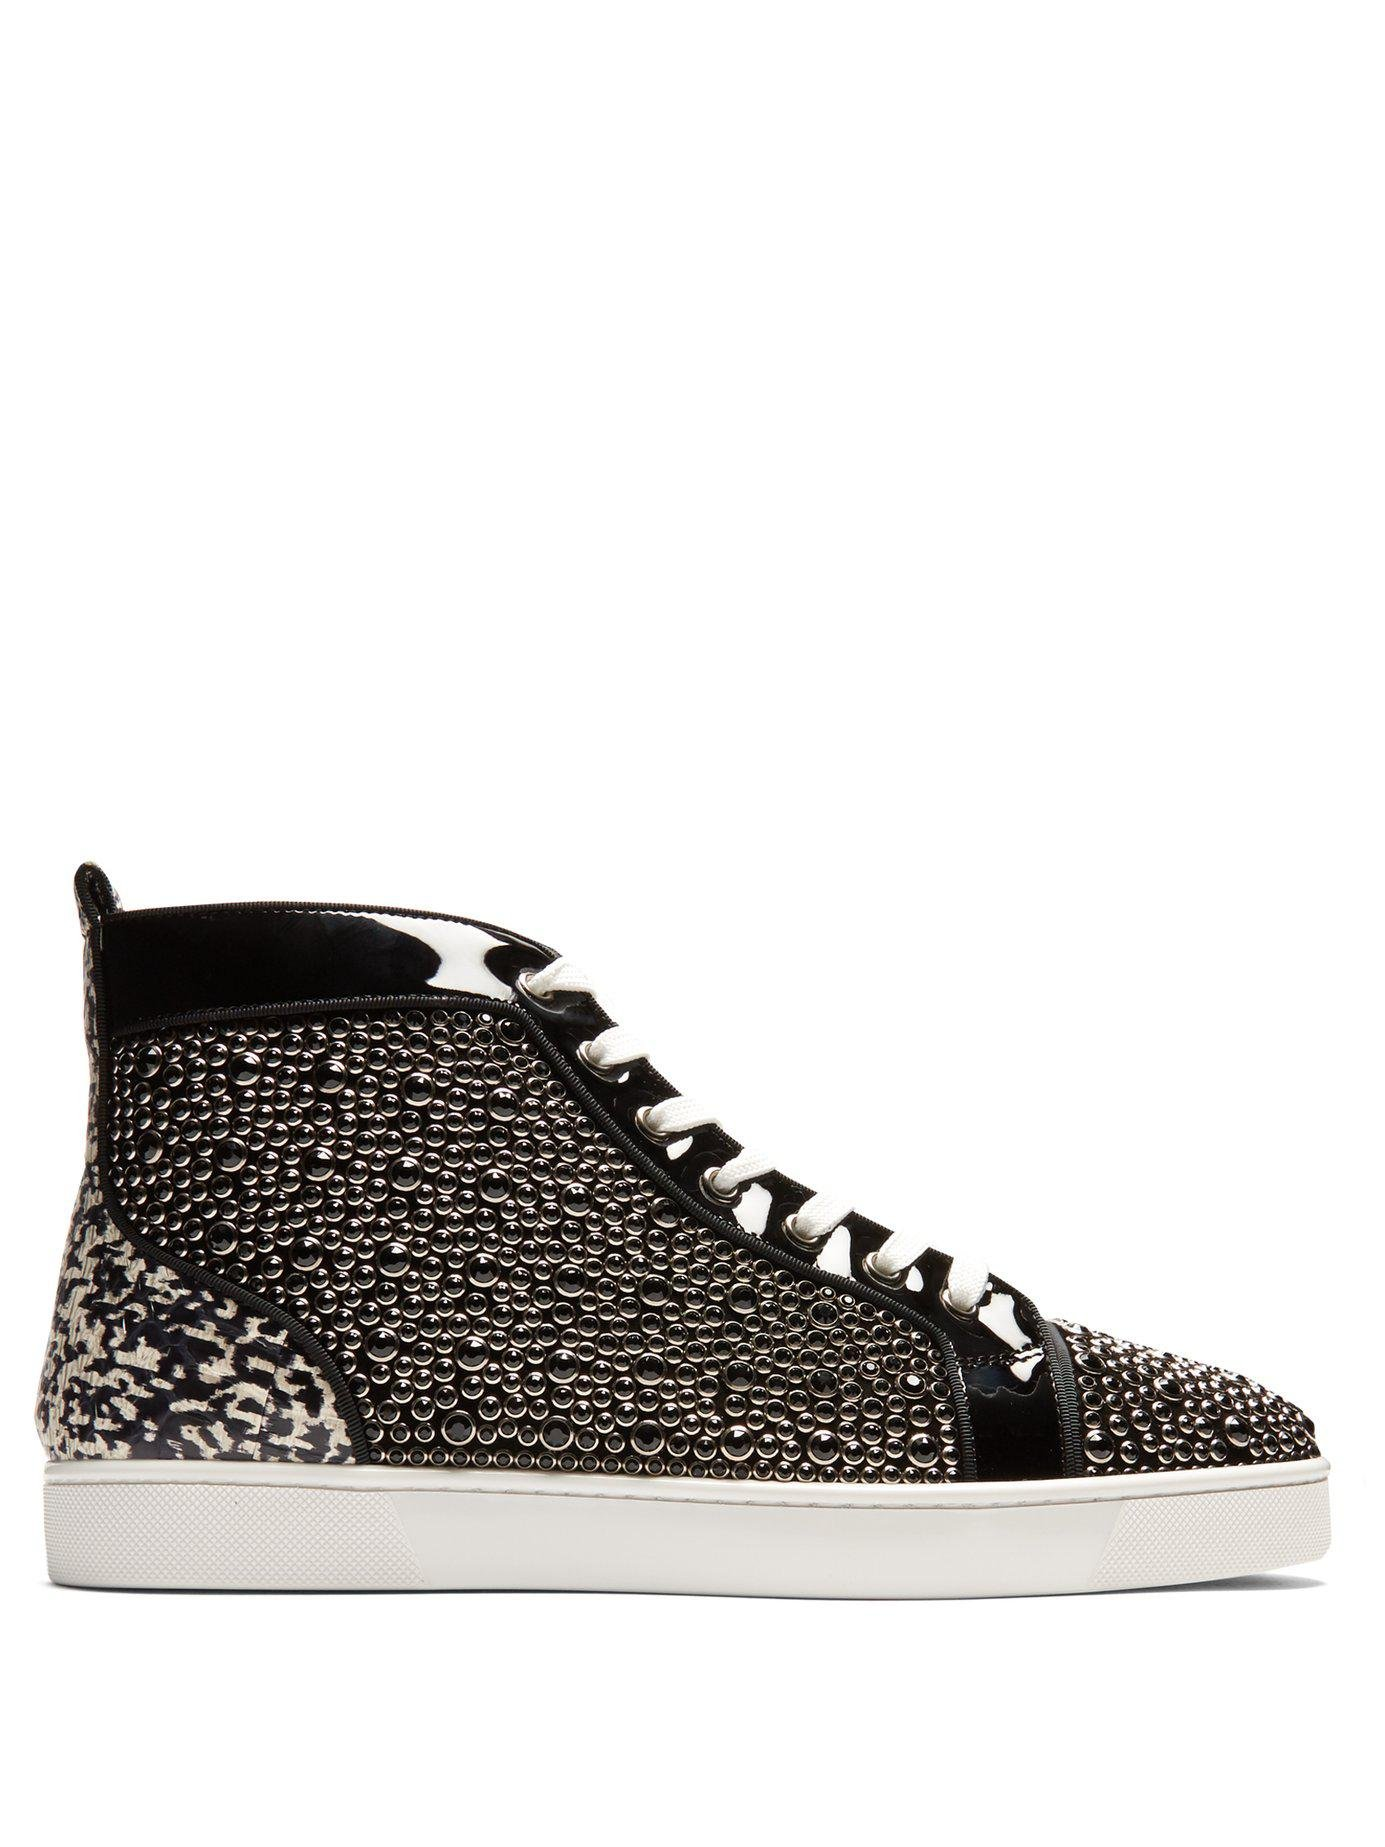 167bc1330282 Lyst - Christian Louboutin Louis Orlato High Top Patent Leather ...